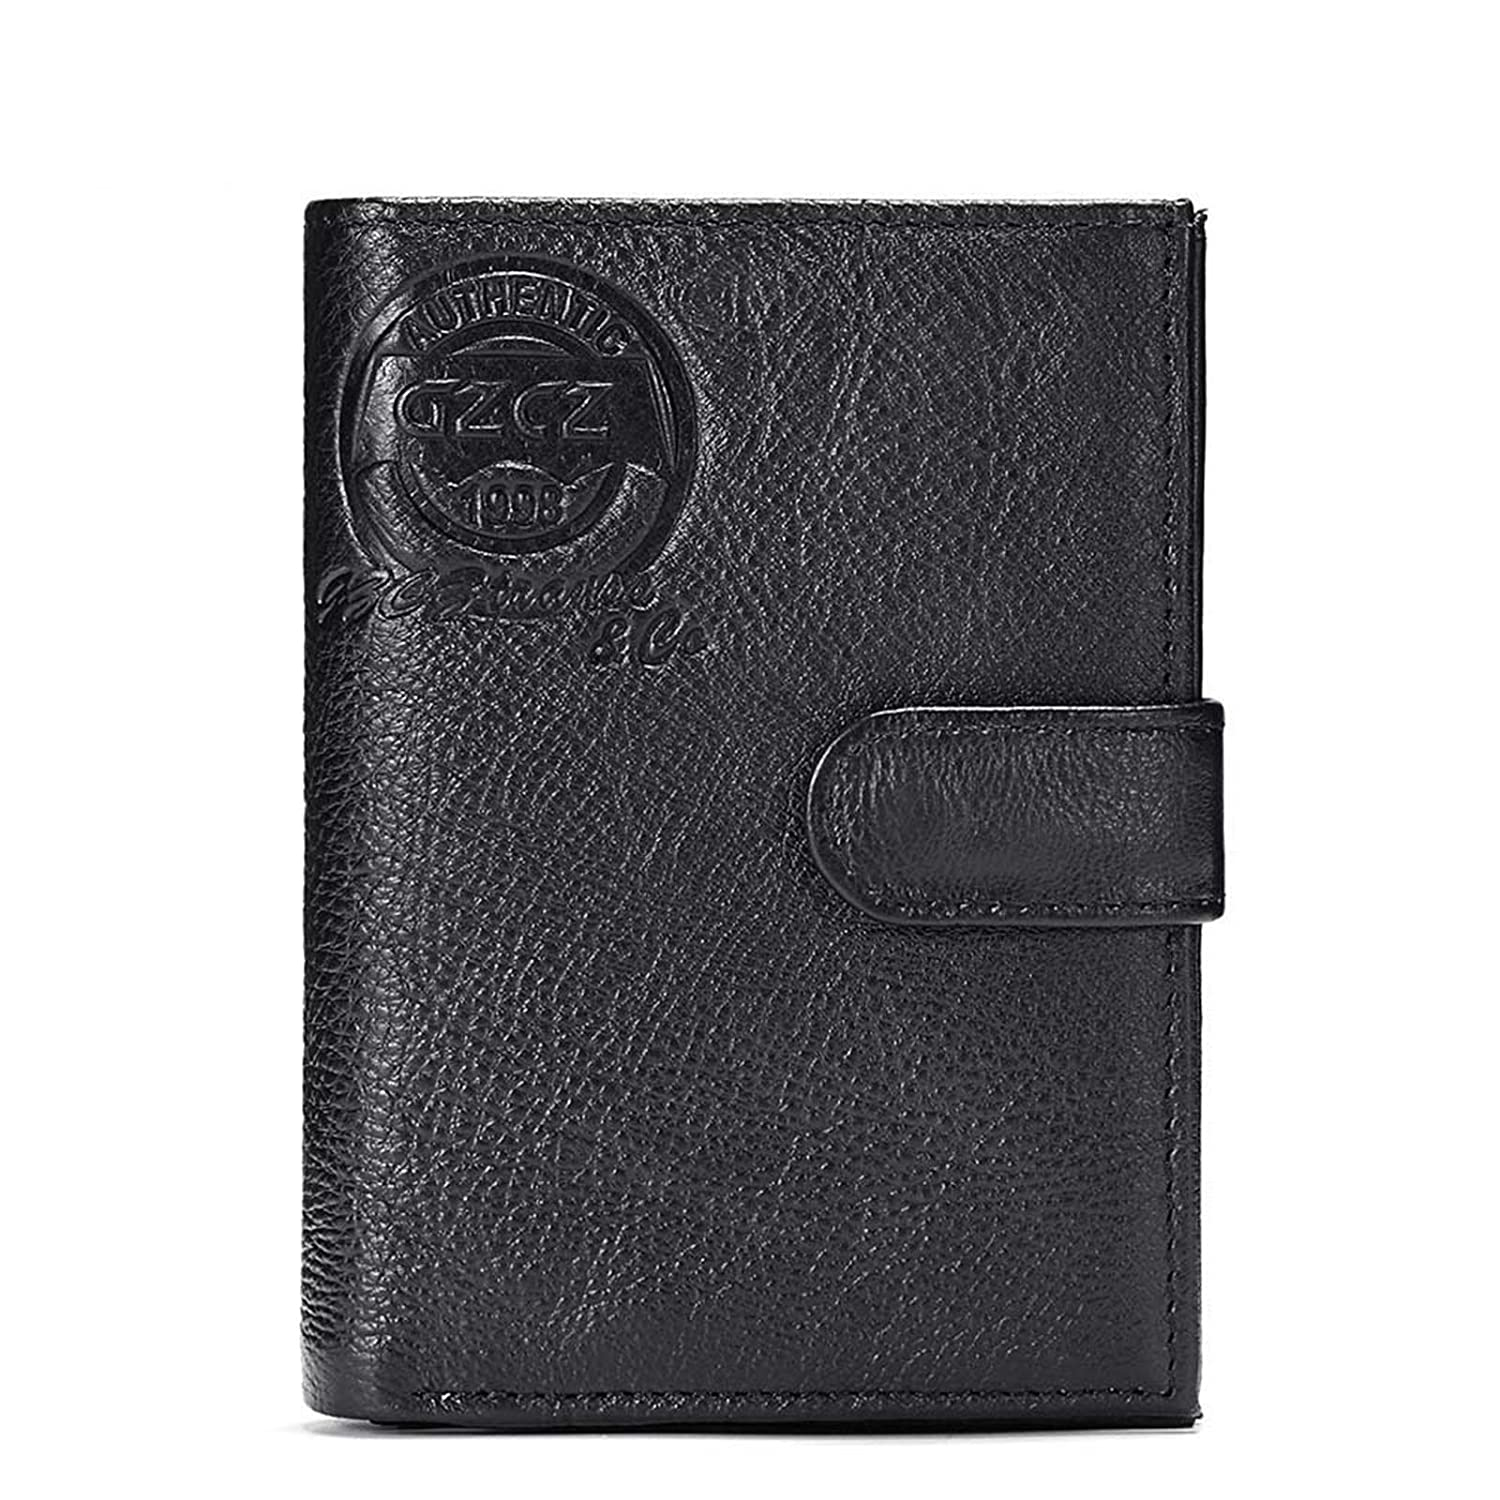 KnSam Leather Wallets for Mens Bifold